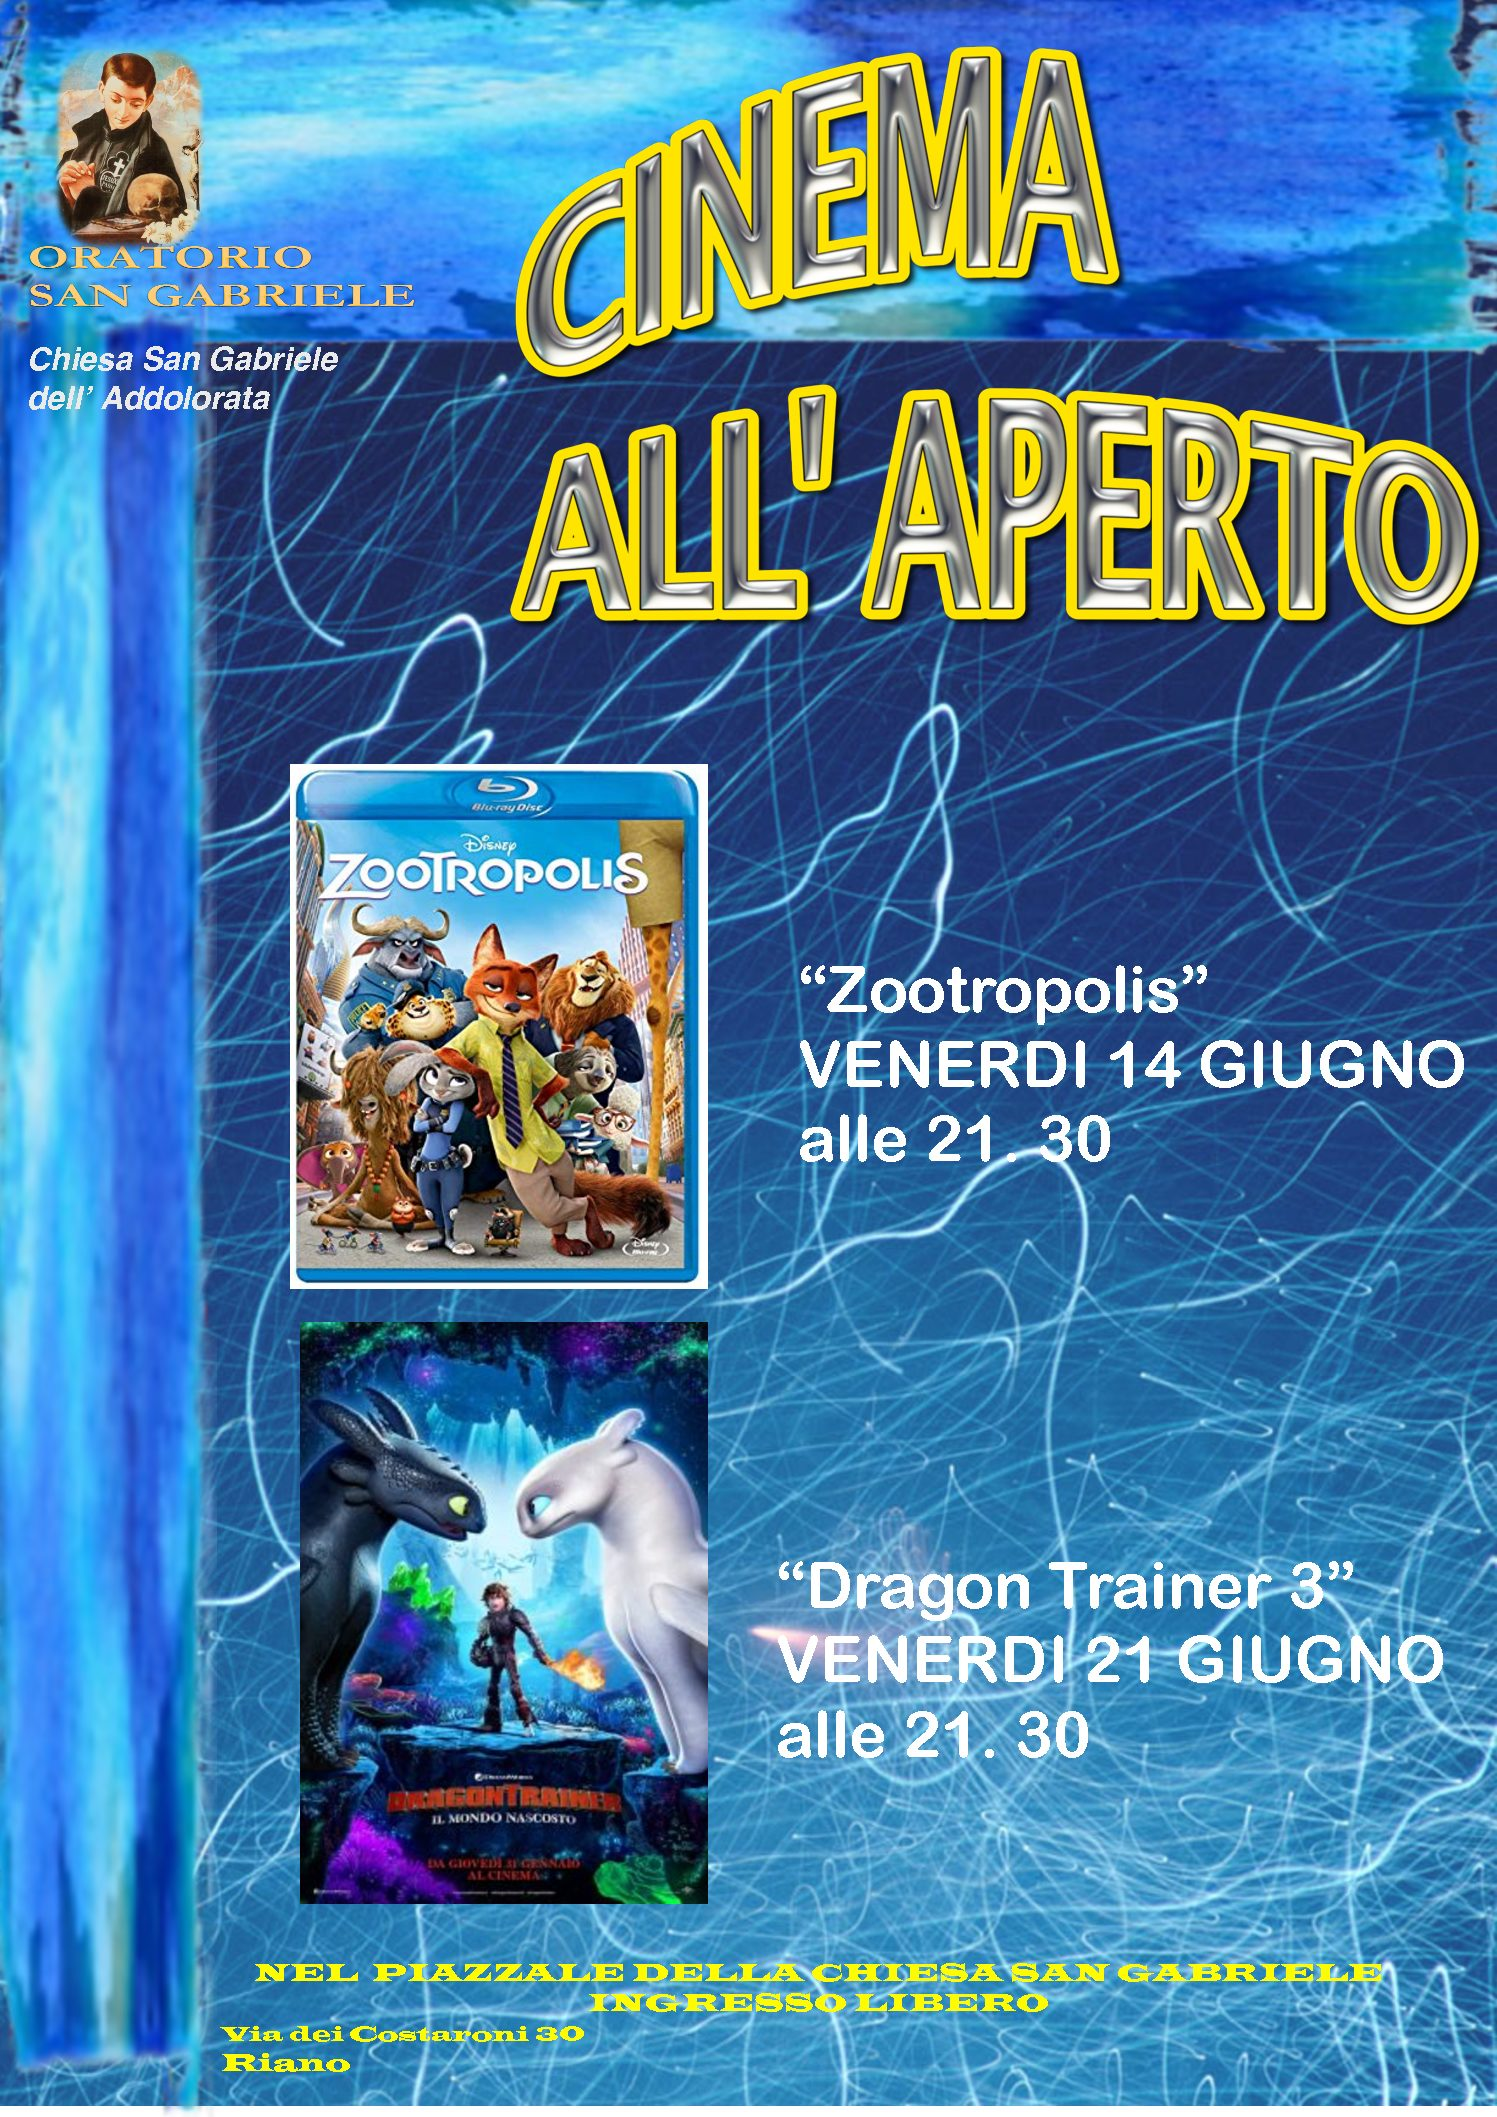 Cinema all'aperto 2019